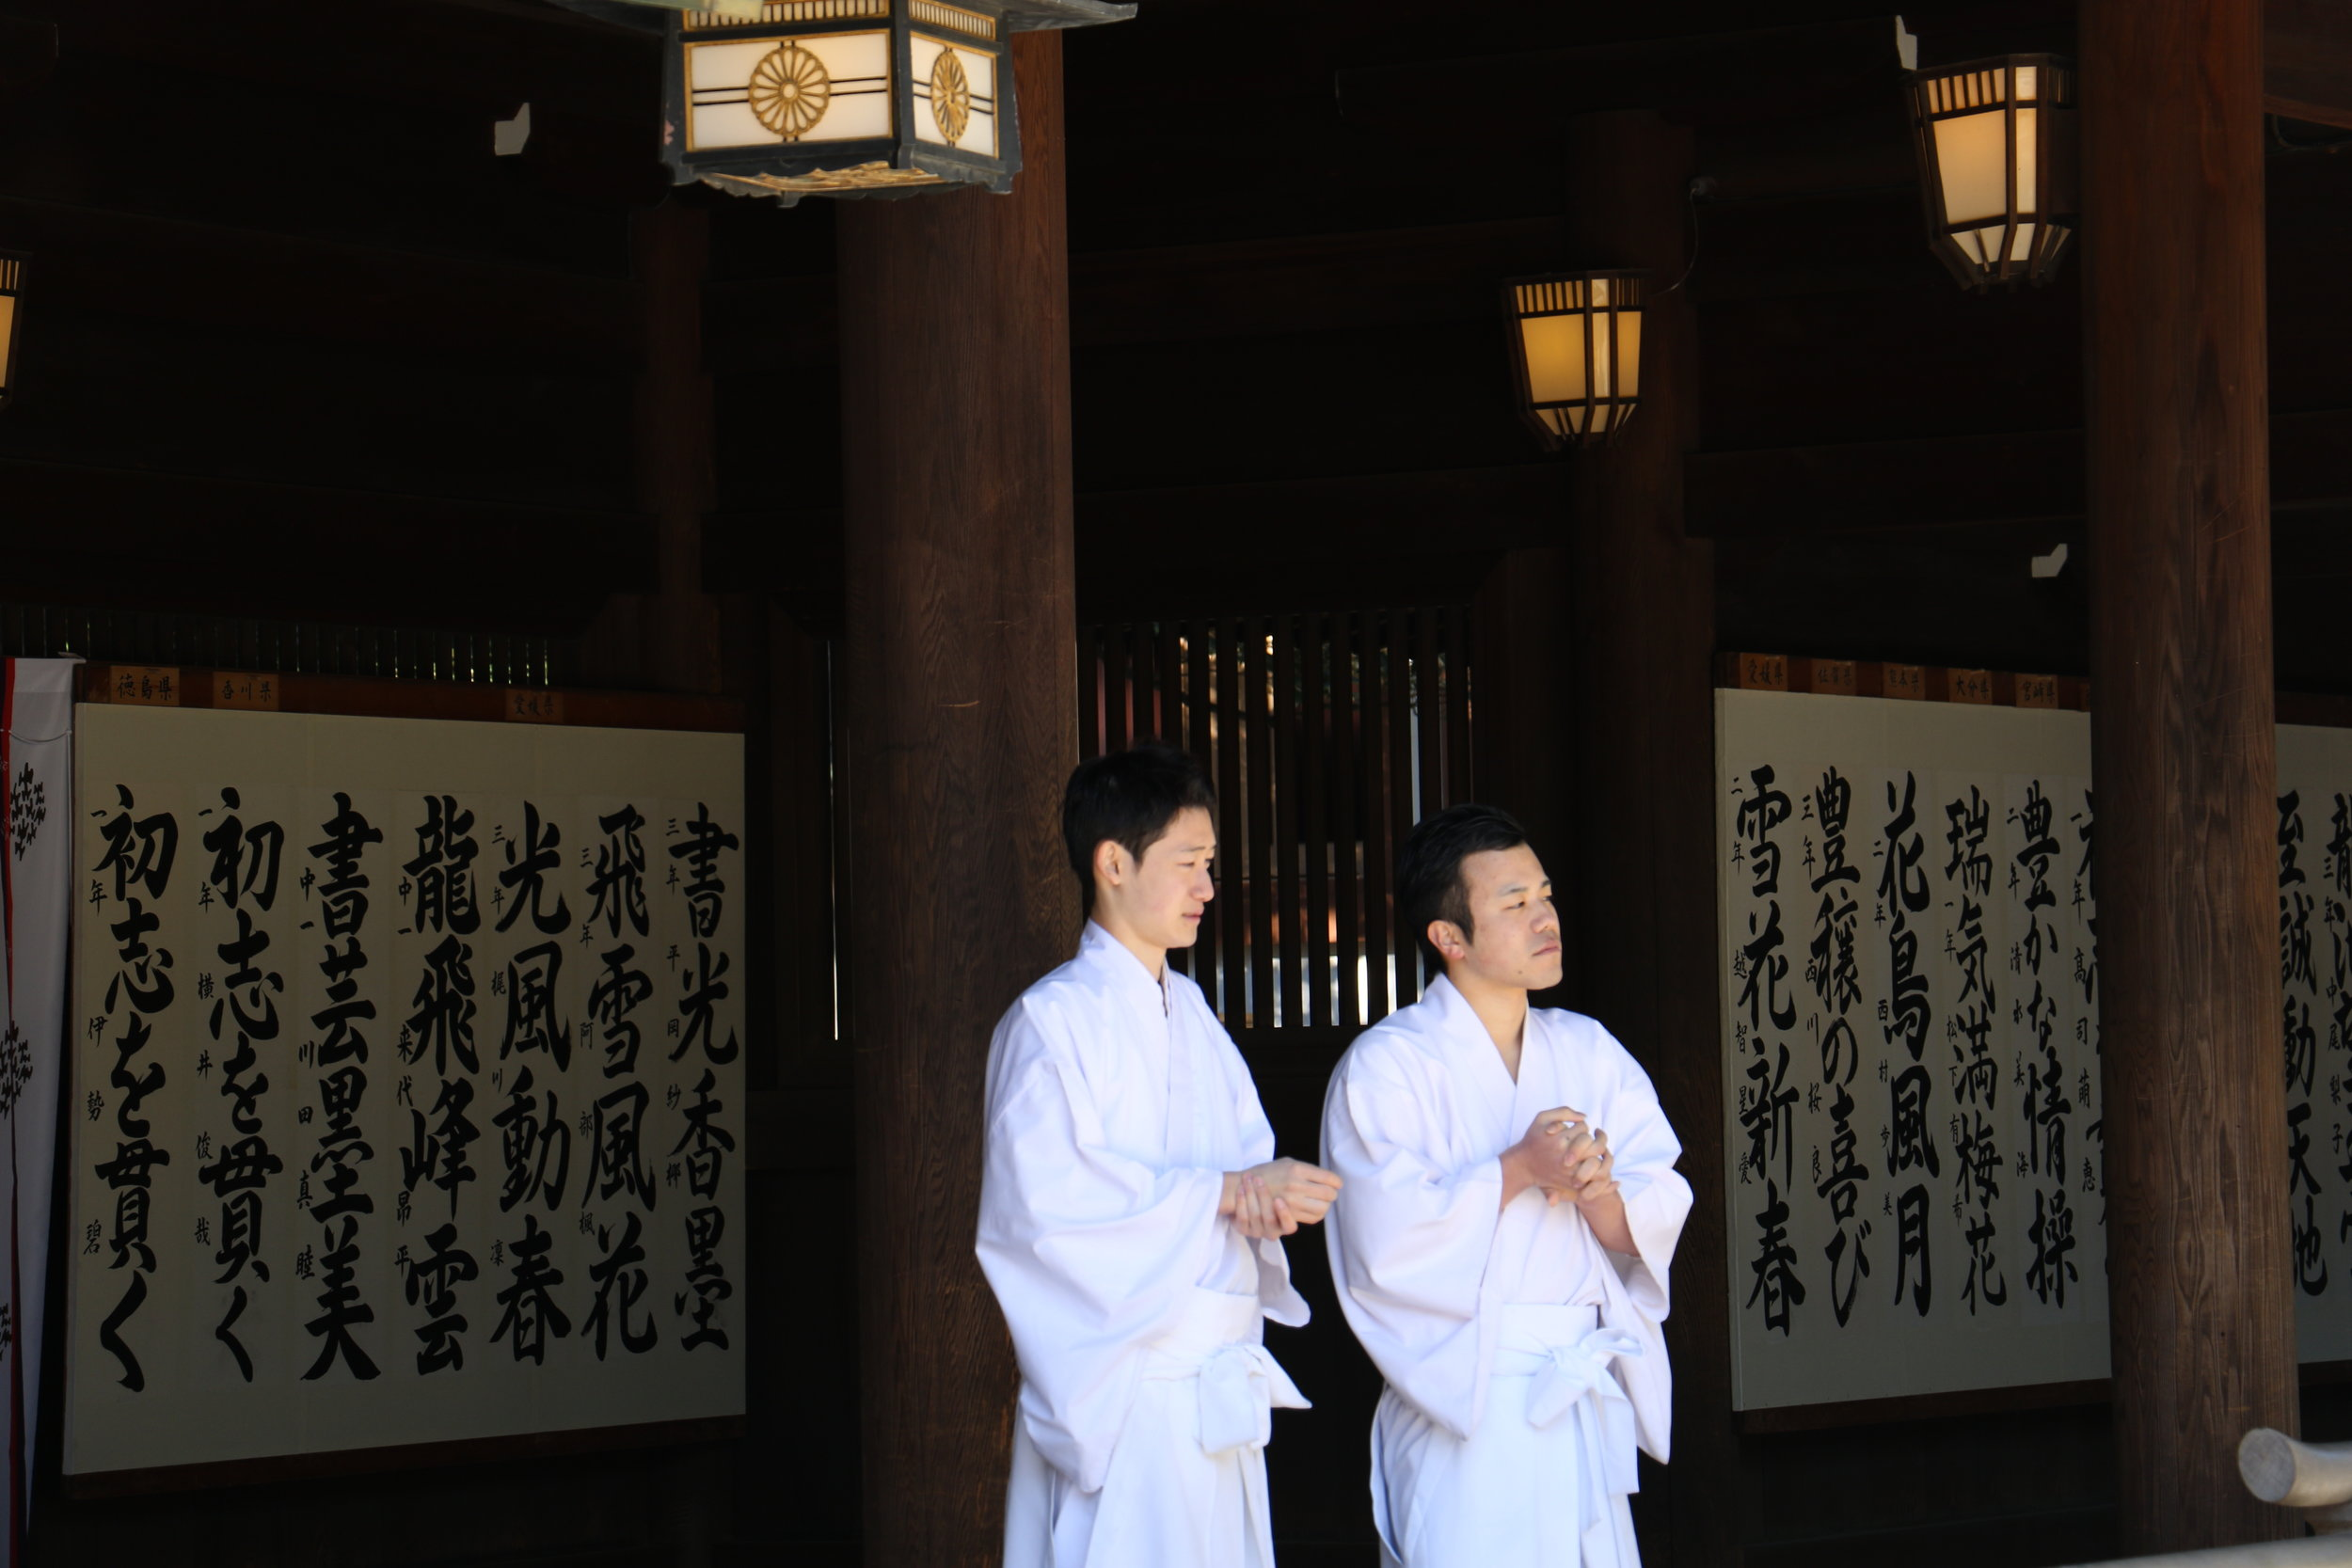 Two monks await a private ceremony at Meiji-Jingu.